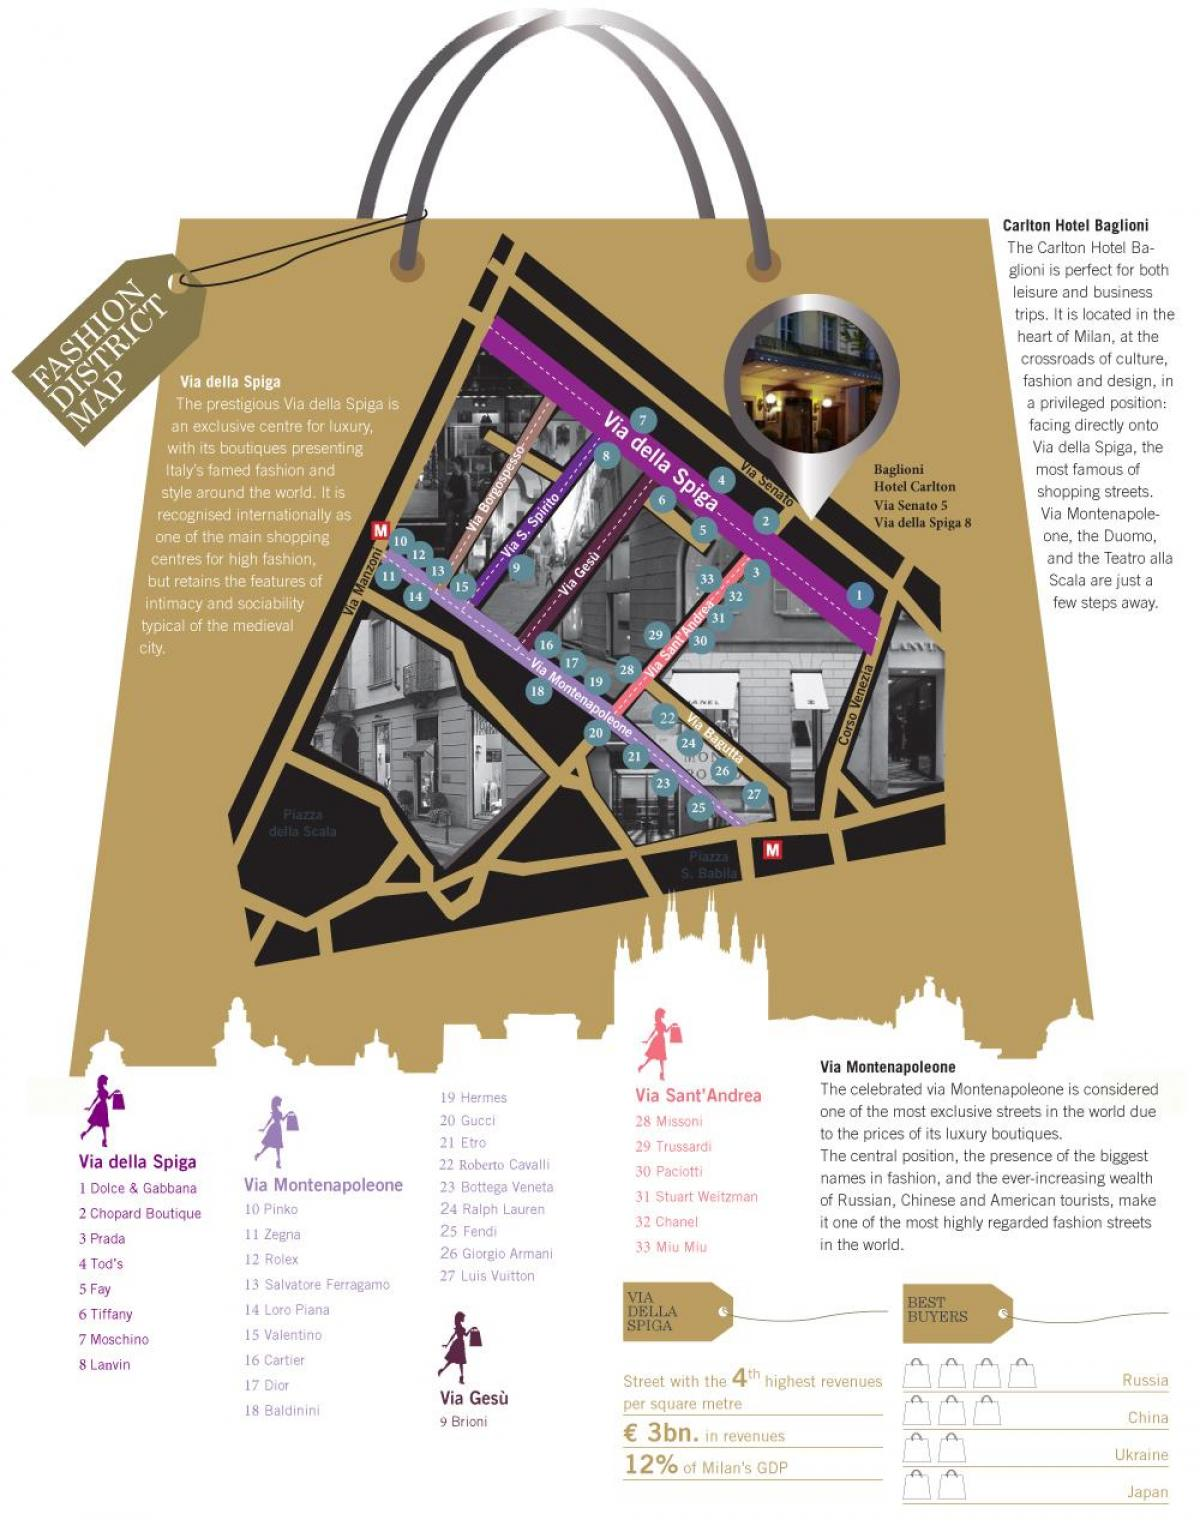 mapa milan fashion district